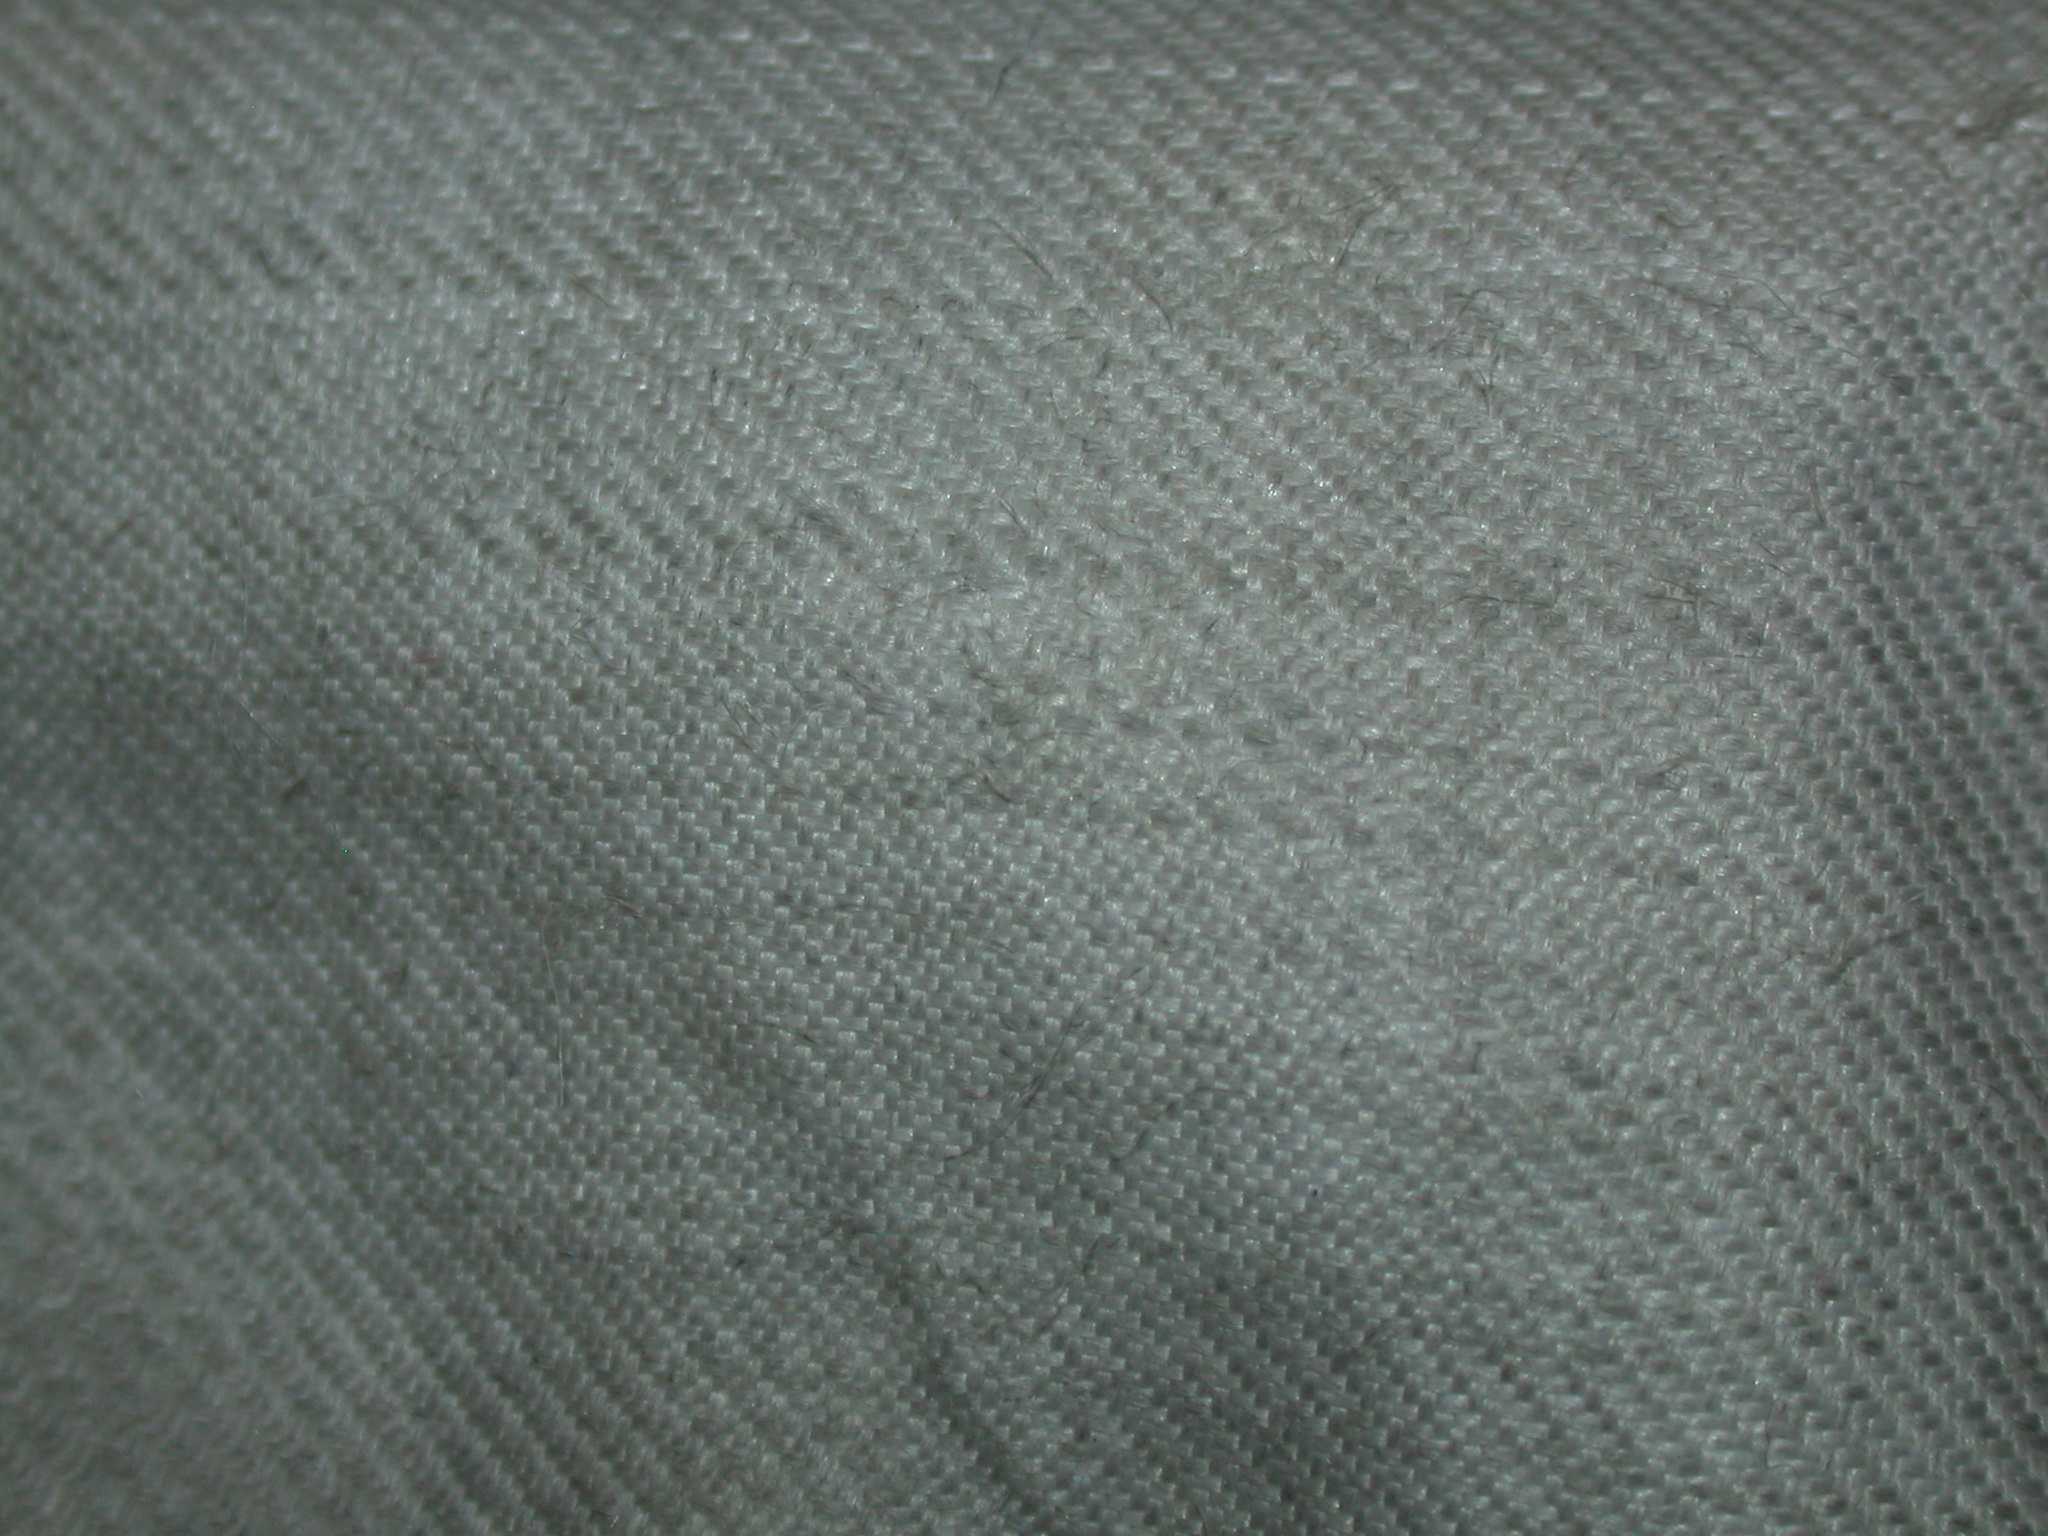 nasa space suit material - photo #6